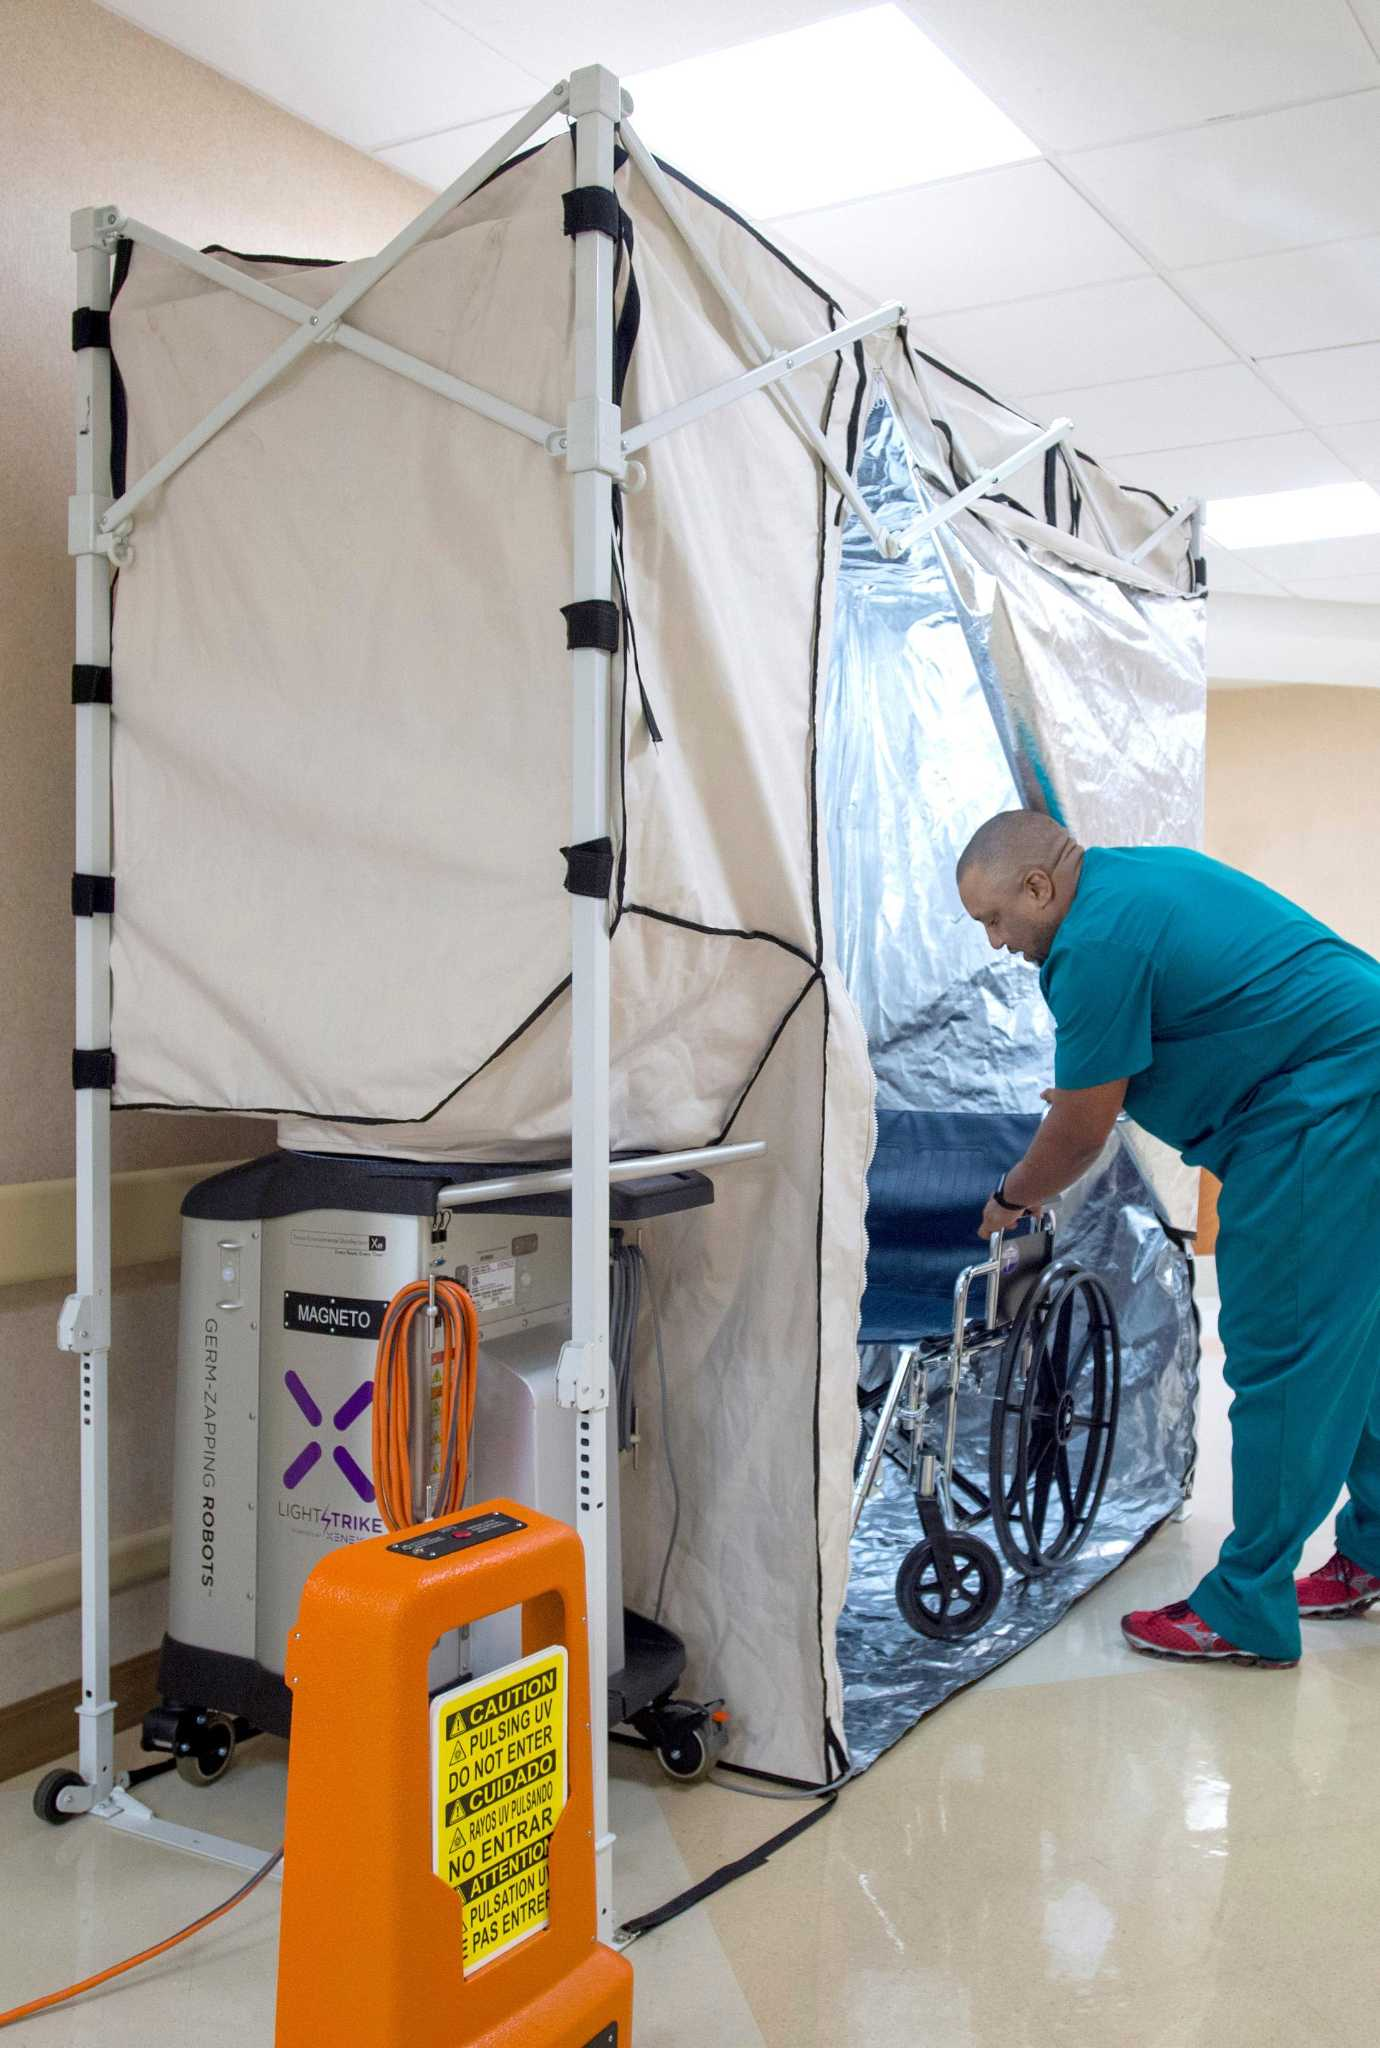 Xenex rolls out new disinfection pod for hospital equipment san xenex rolls out new disinfection pod for hospital equipment san antonio express news ccuart Choice Image